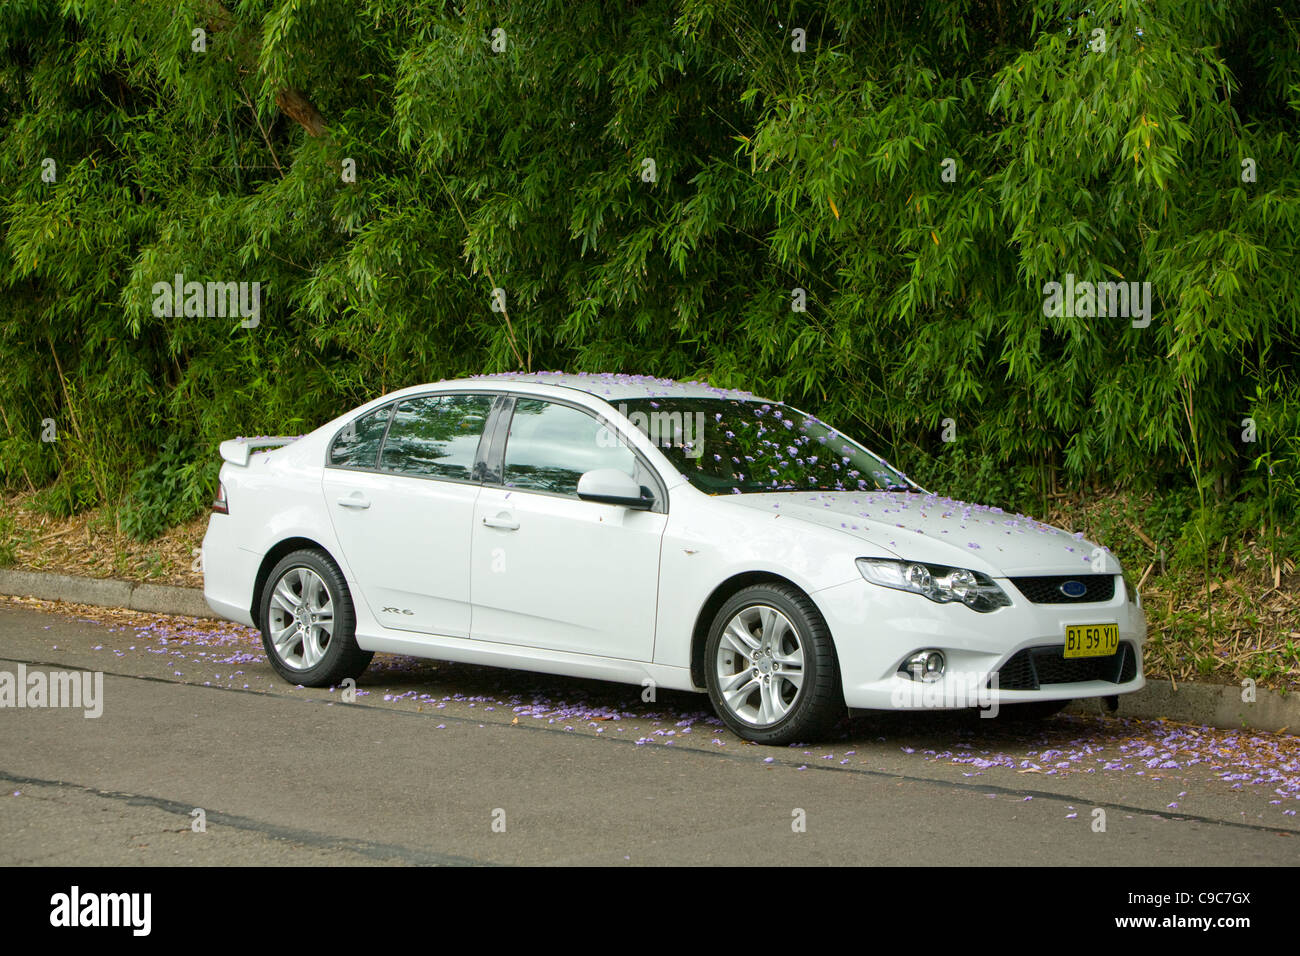 Mad Max Car For Sale Uk >> Ford Falcon Car Stock Photos & Ford Falcon Car Stock Images - Alamy